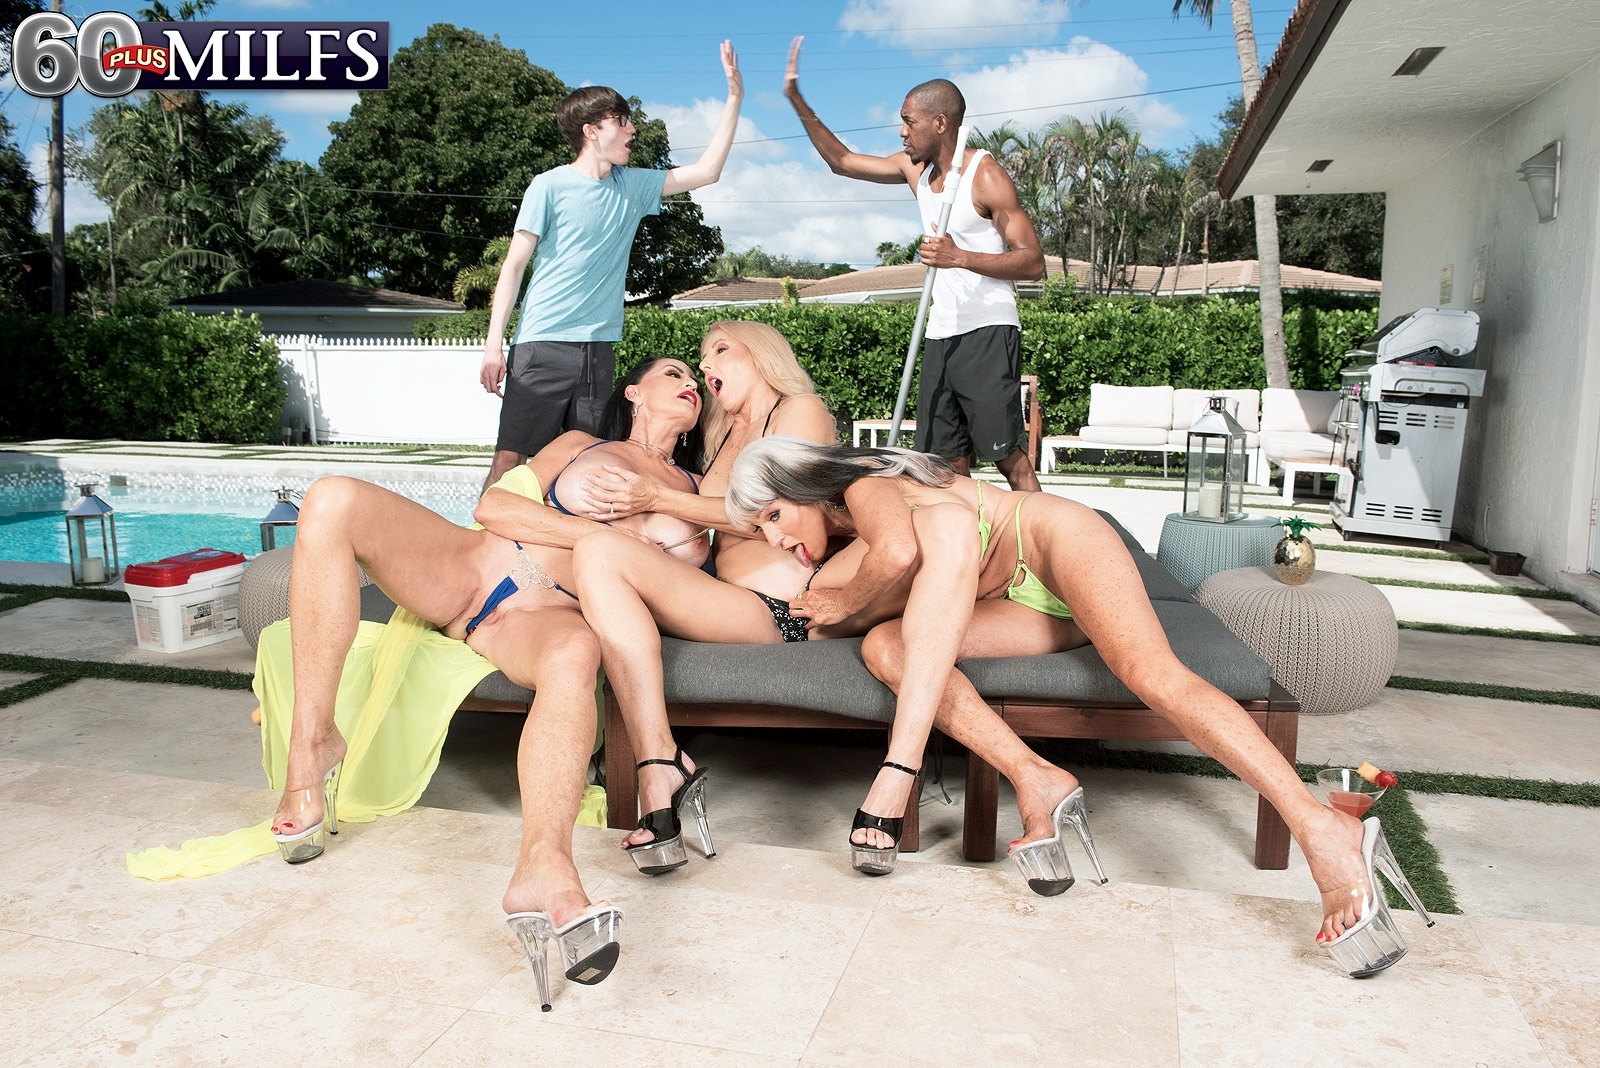 Granny pornstar Rita Daniels and her girlfriends seduce the pool cleaning boys